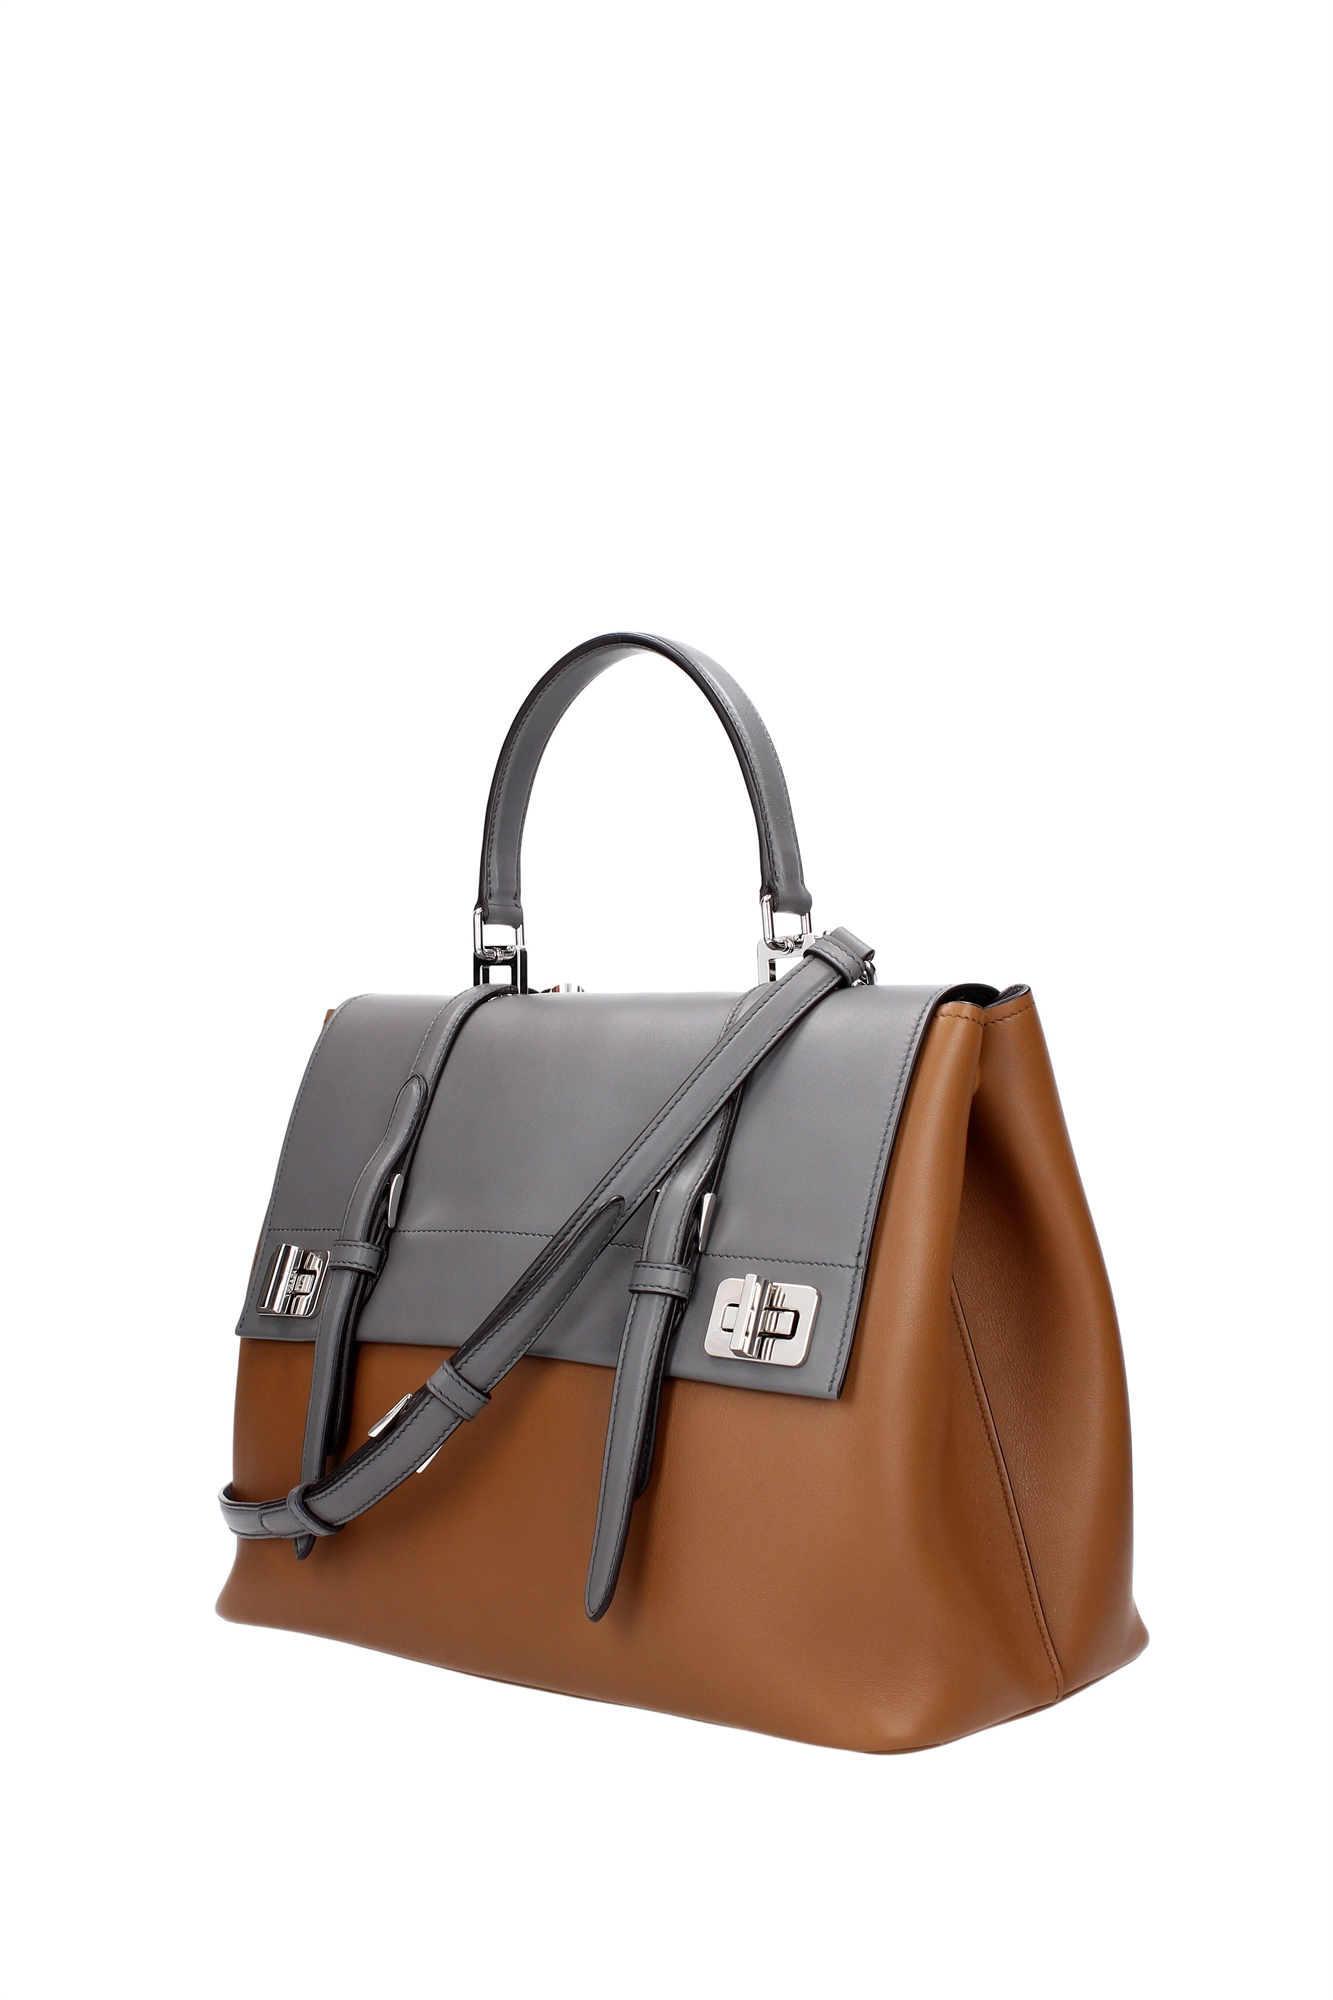 Lastest Prada Women Bag 3d Model